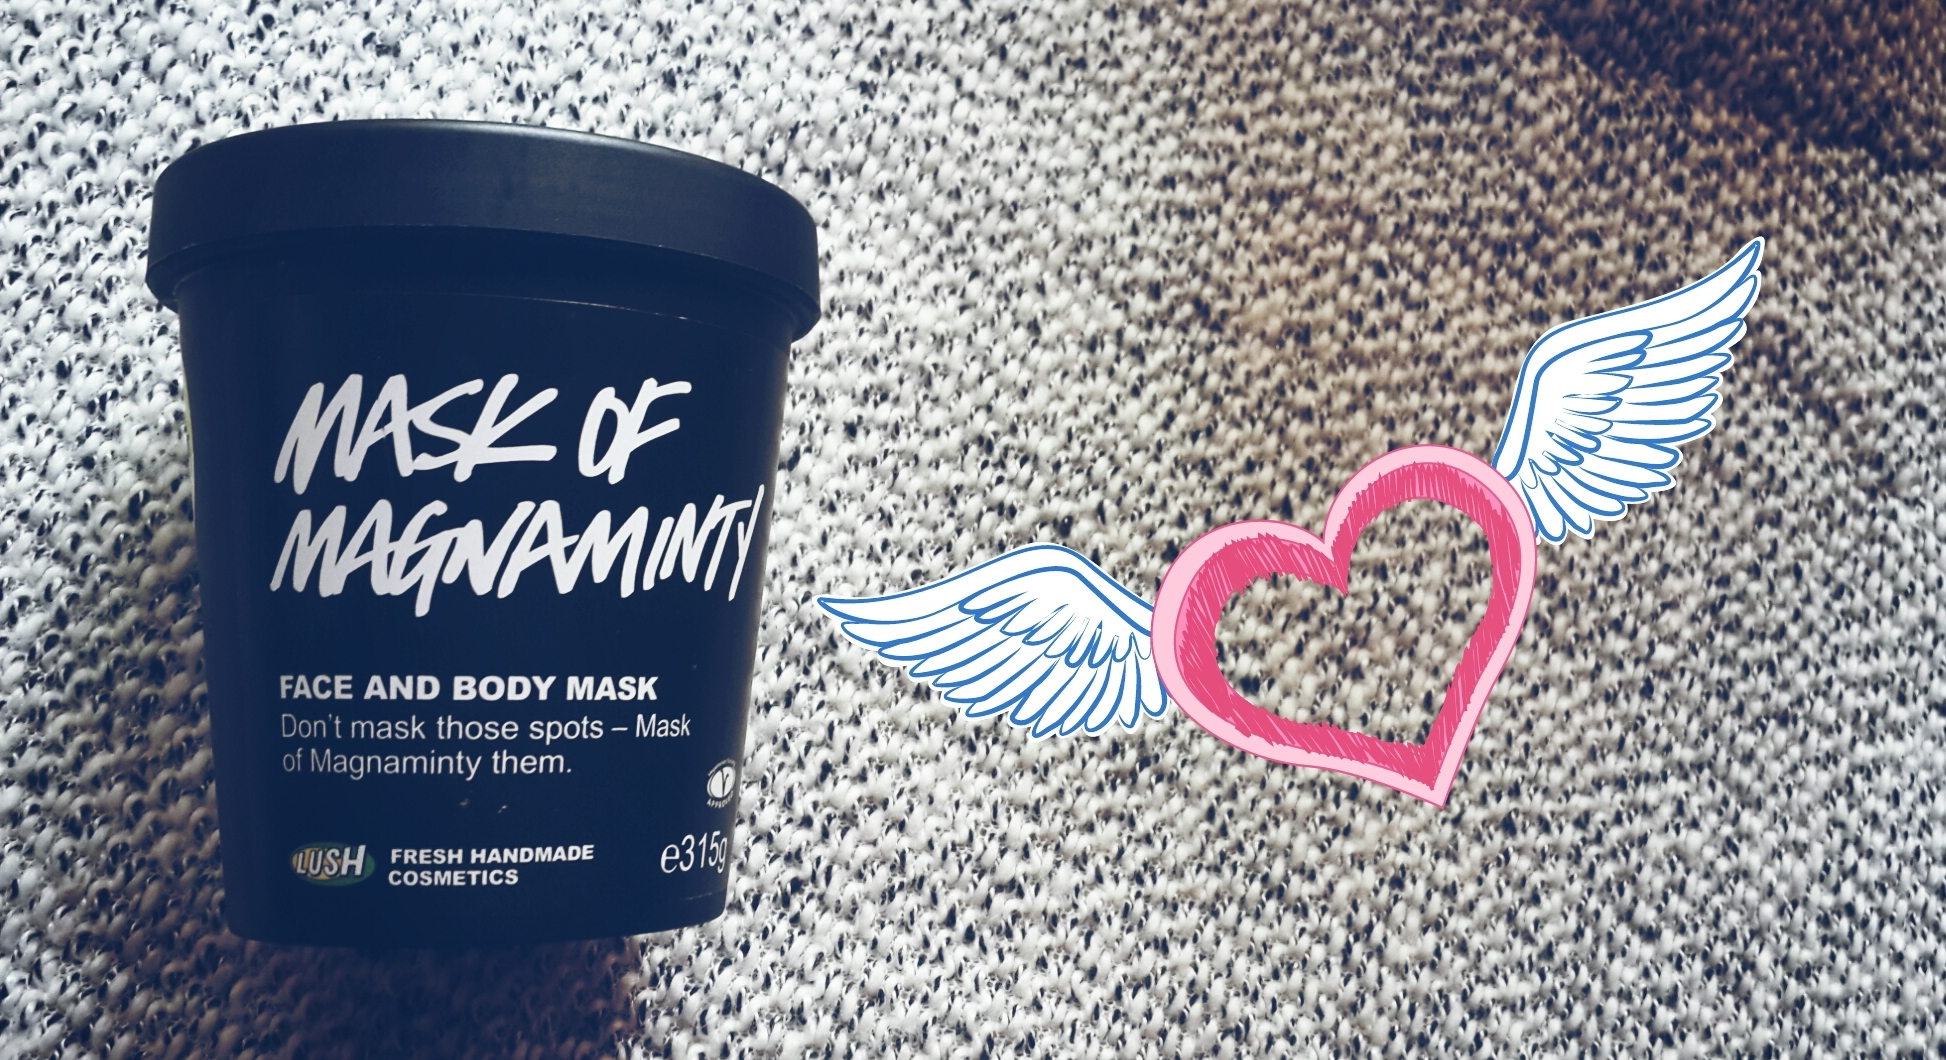 Mask of Magnaminty by LUSH Review